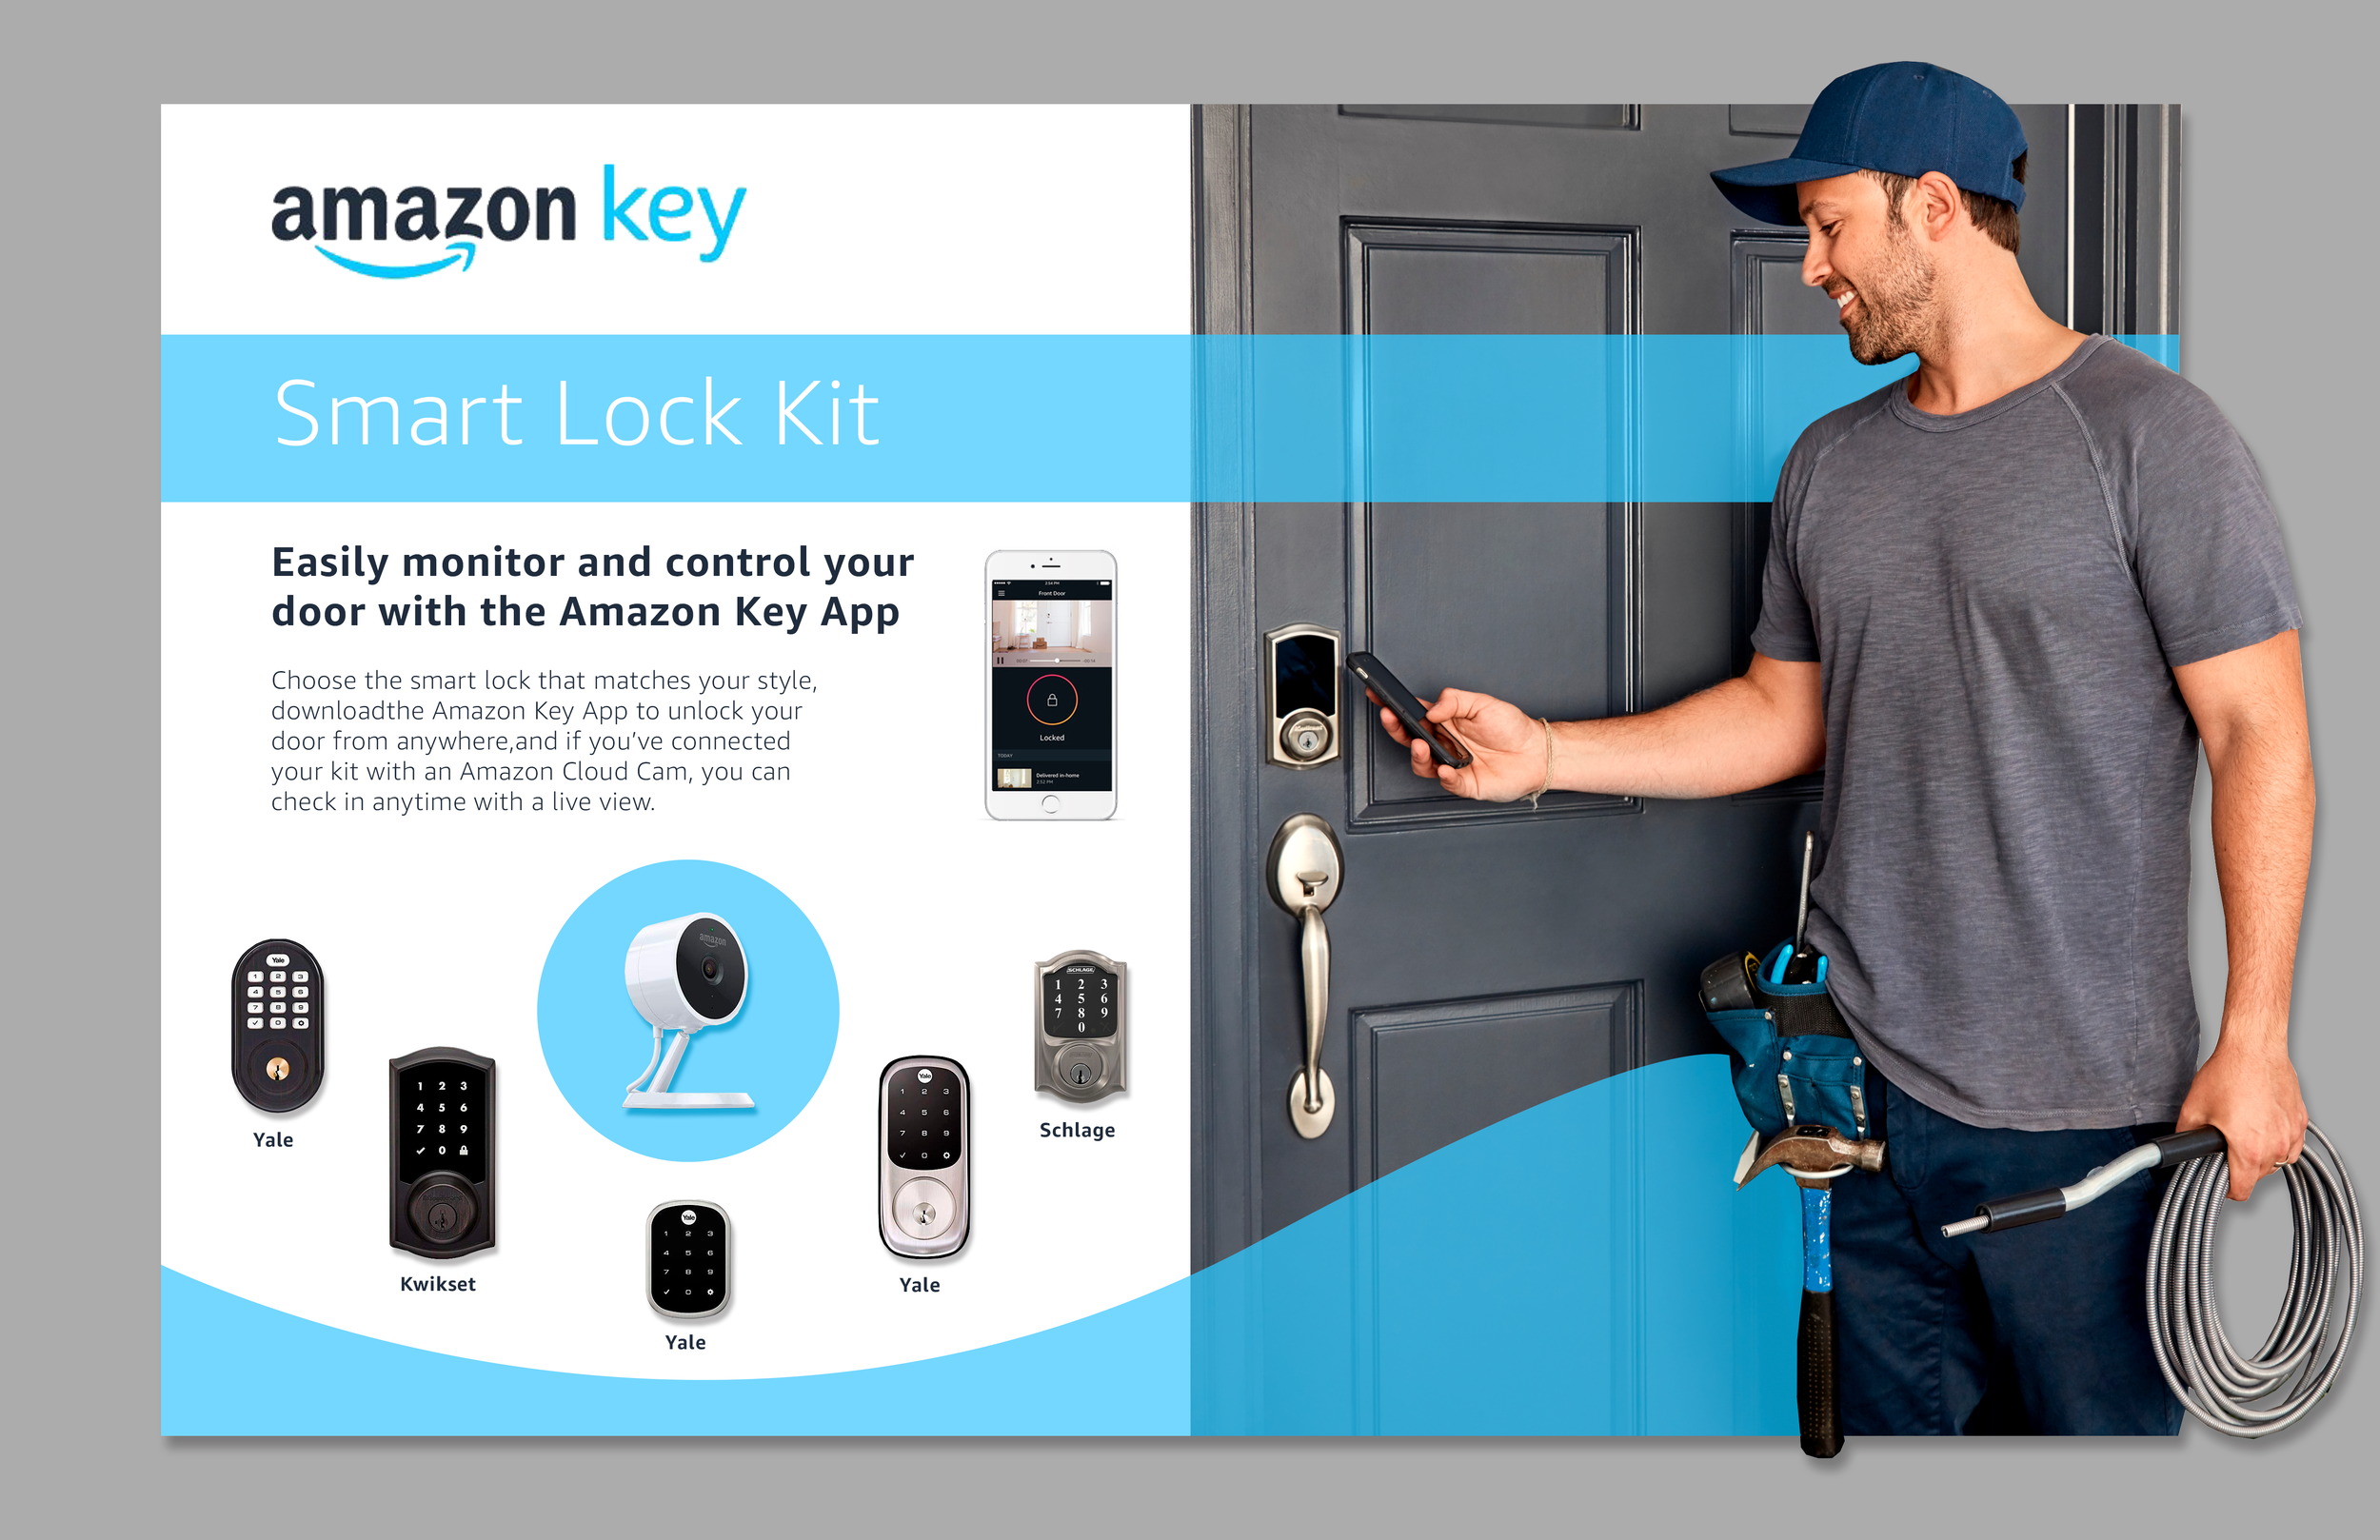 Initial design mock-up that I designed. This image was pitched to the Amazon Key team and secured the design opportunity for Dose.